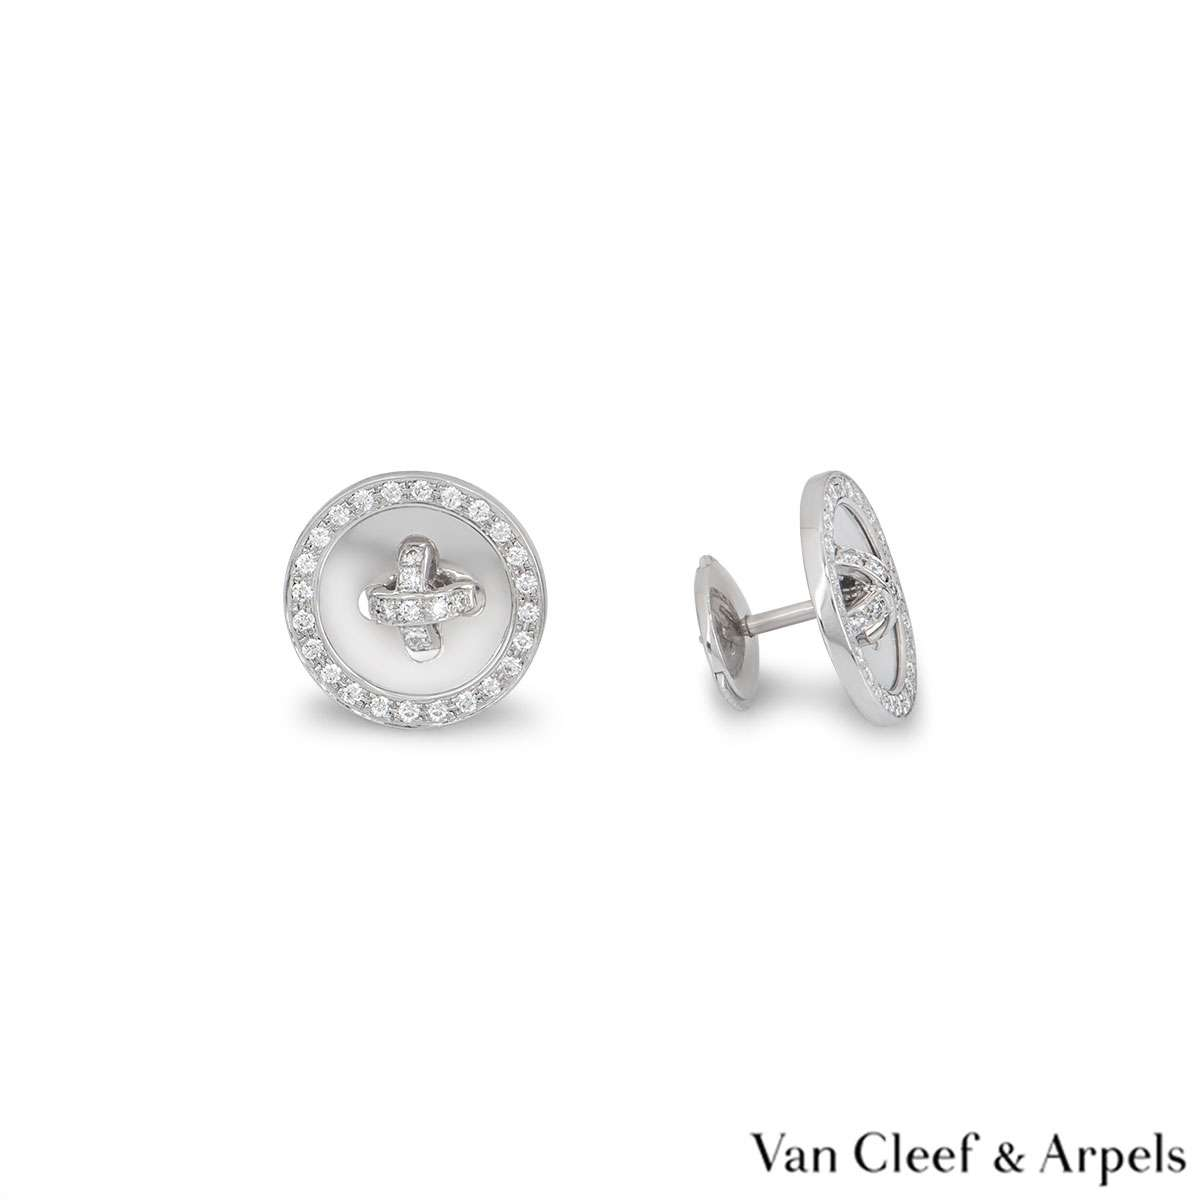 Van Cleef & Arpels White Gold Diamond Button Earrings